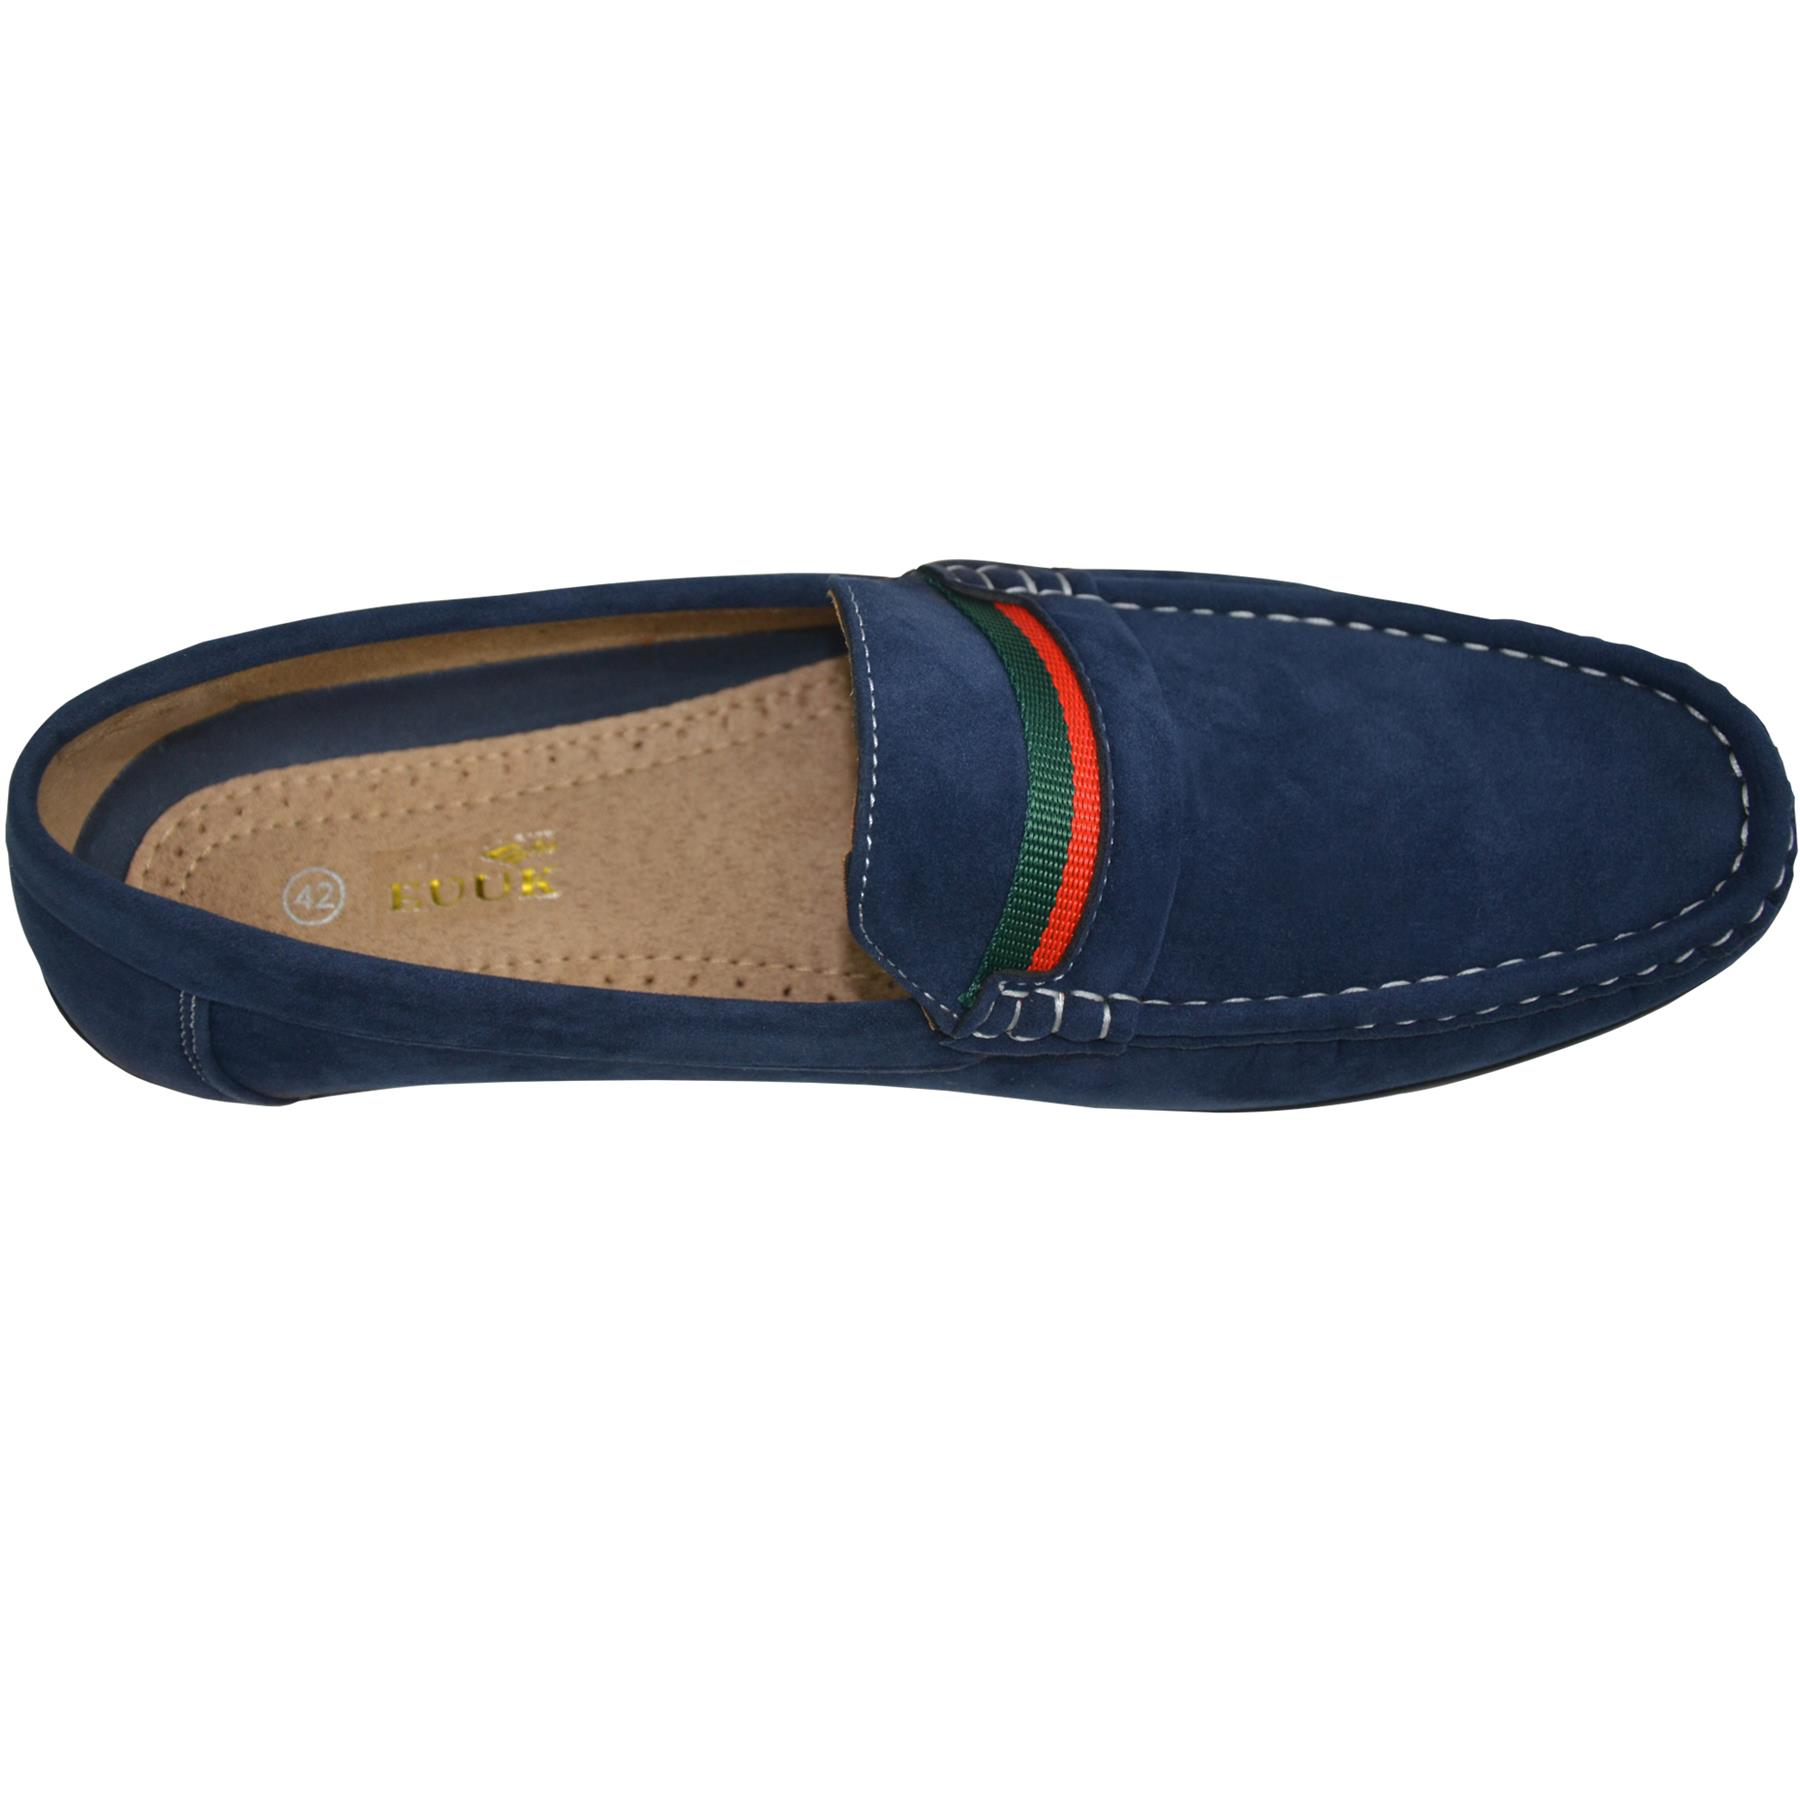 Mens-Slip-Ons-Shoes-Boat-Deck-Driving-Smart-Buckle-Moccasins-Suede-Look-Loafers thumbnail 36